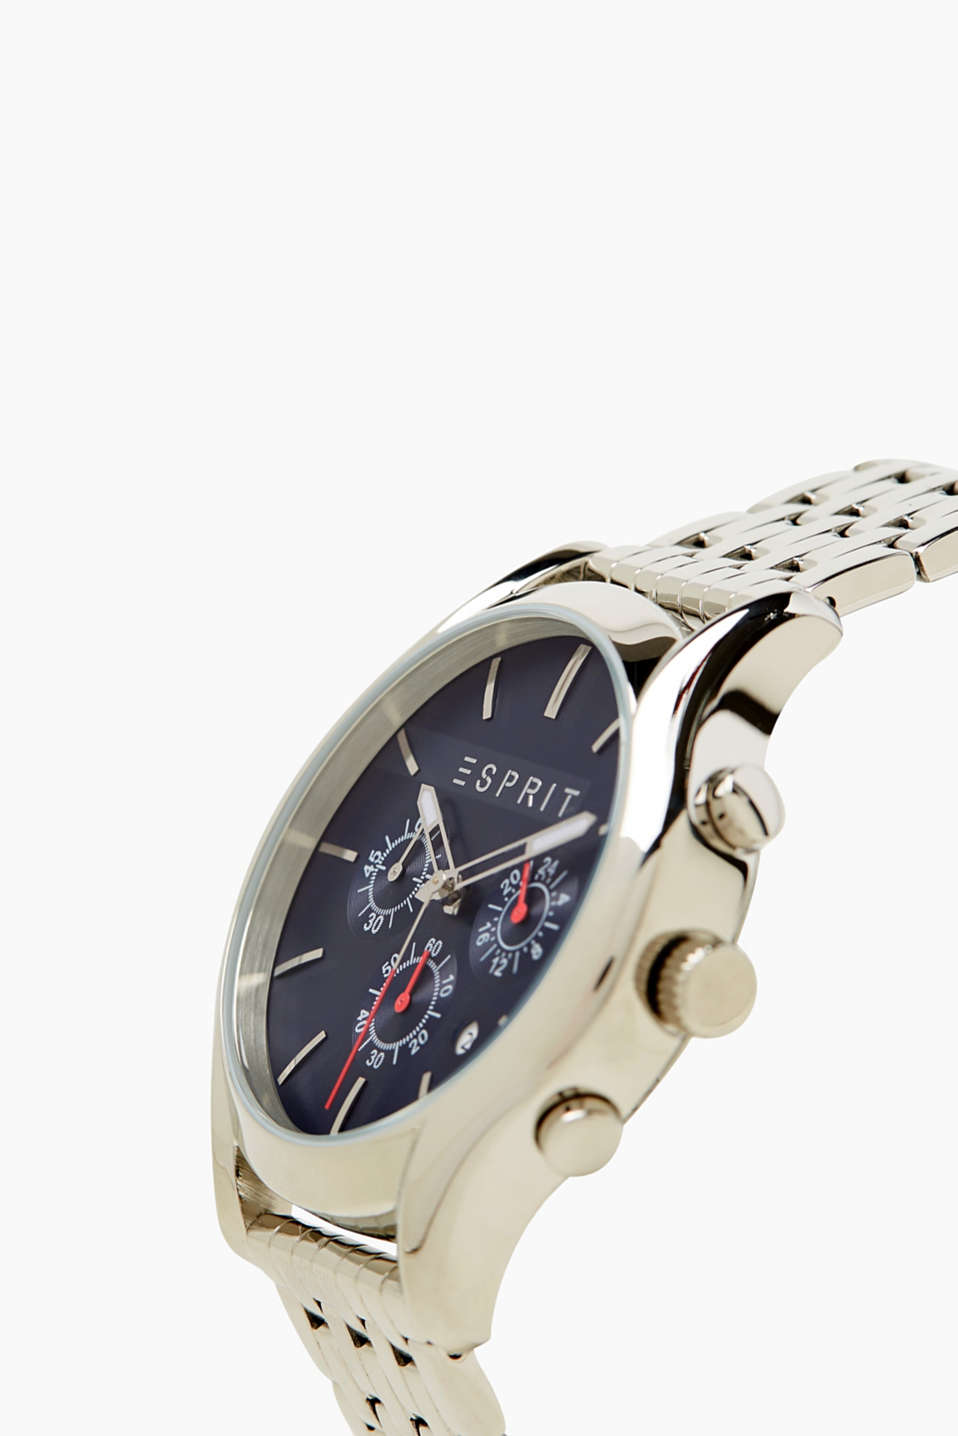 Modern mens watch in stainless steel